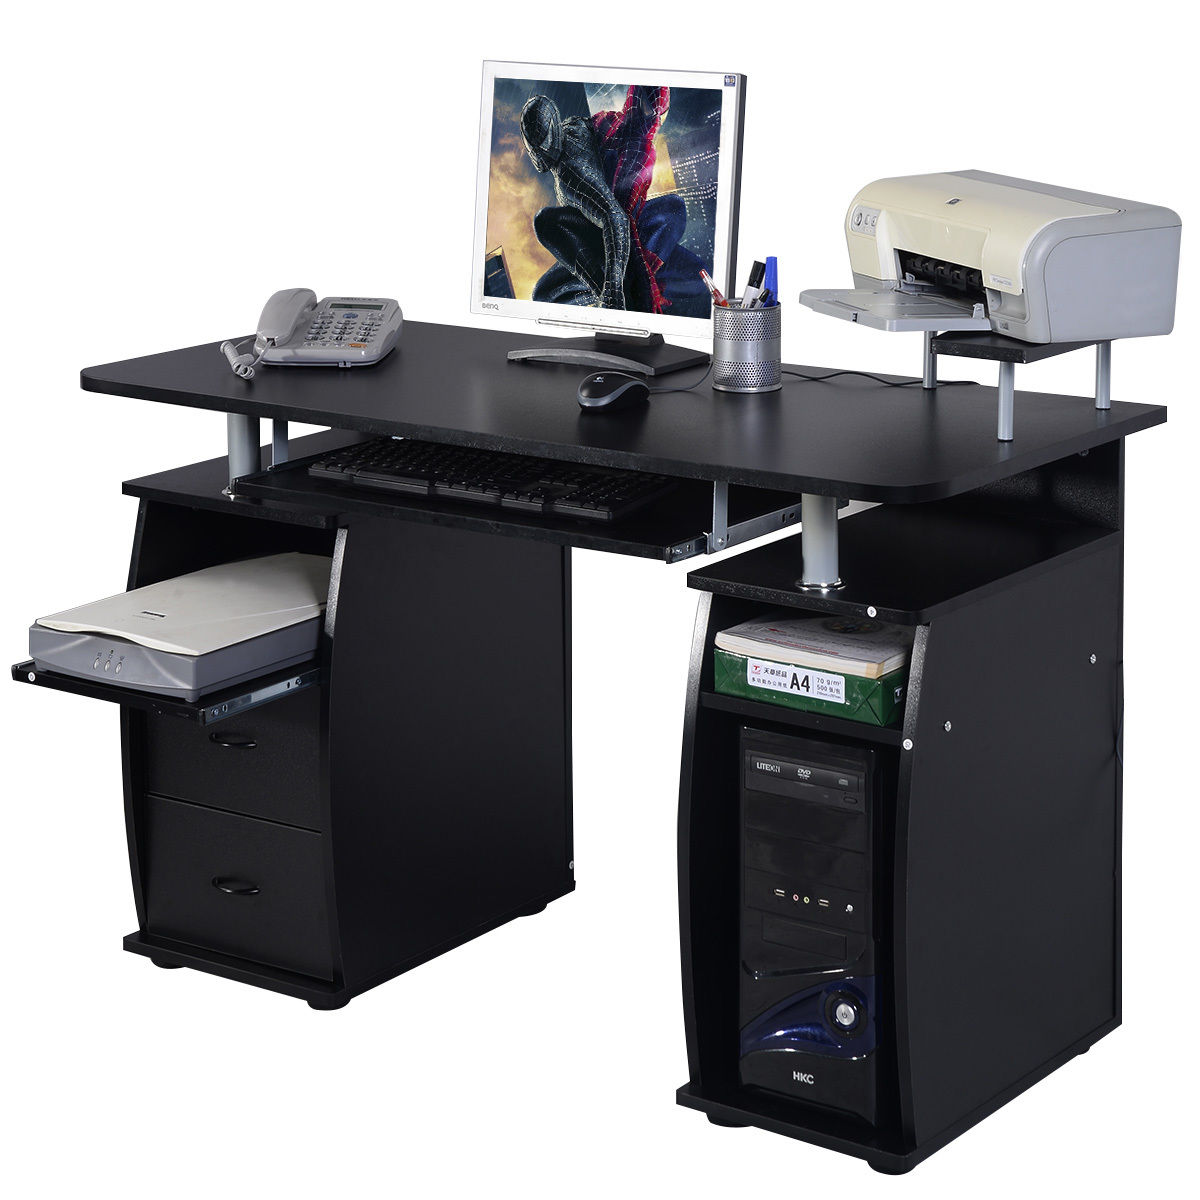 Costway Computer PC Desk Work Station Office Home Monitor&Printer Shelf Furniture Black